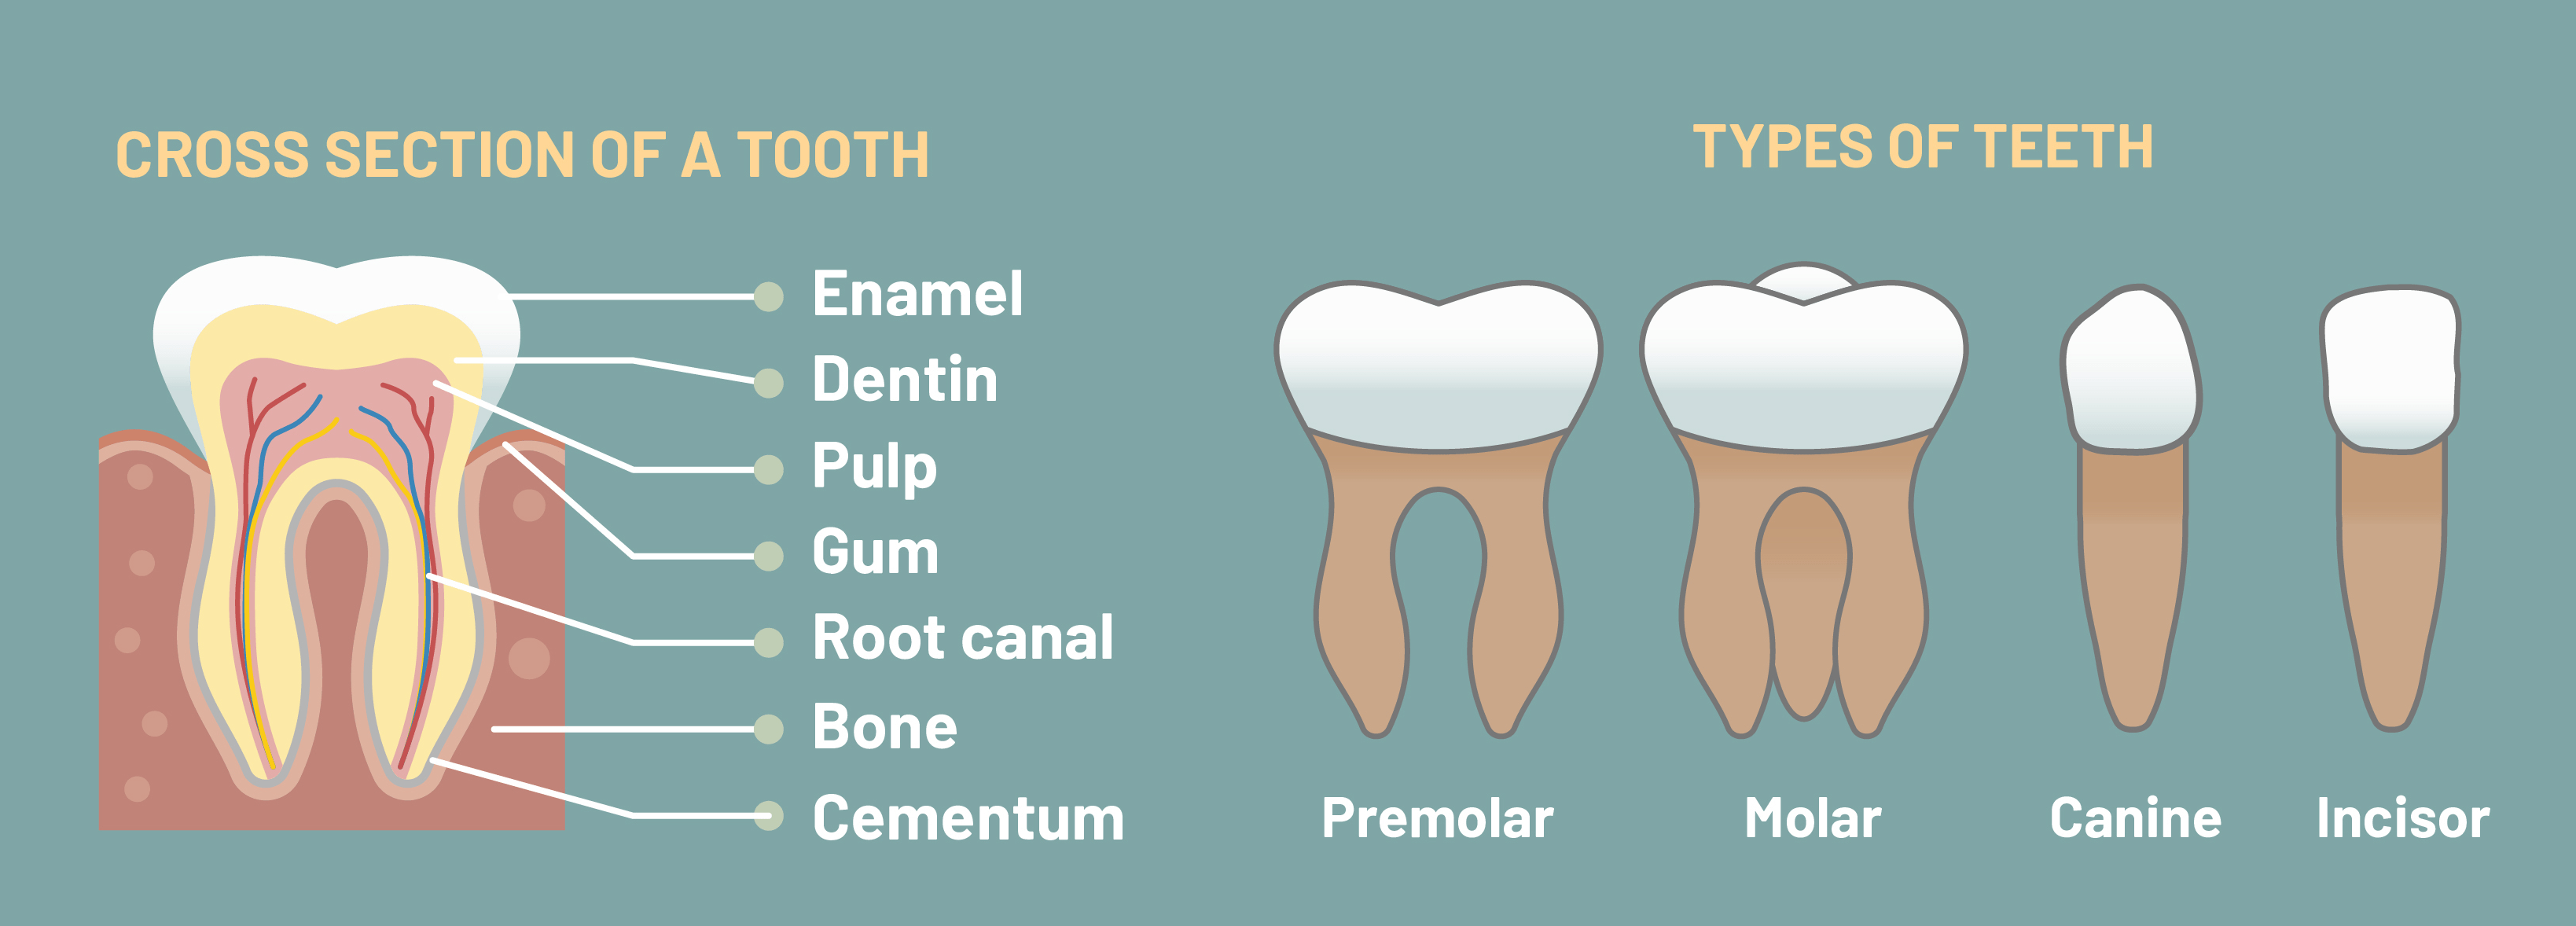 What Are The 4 Types Of Teeth And Why Do We Have Them